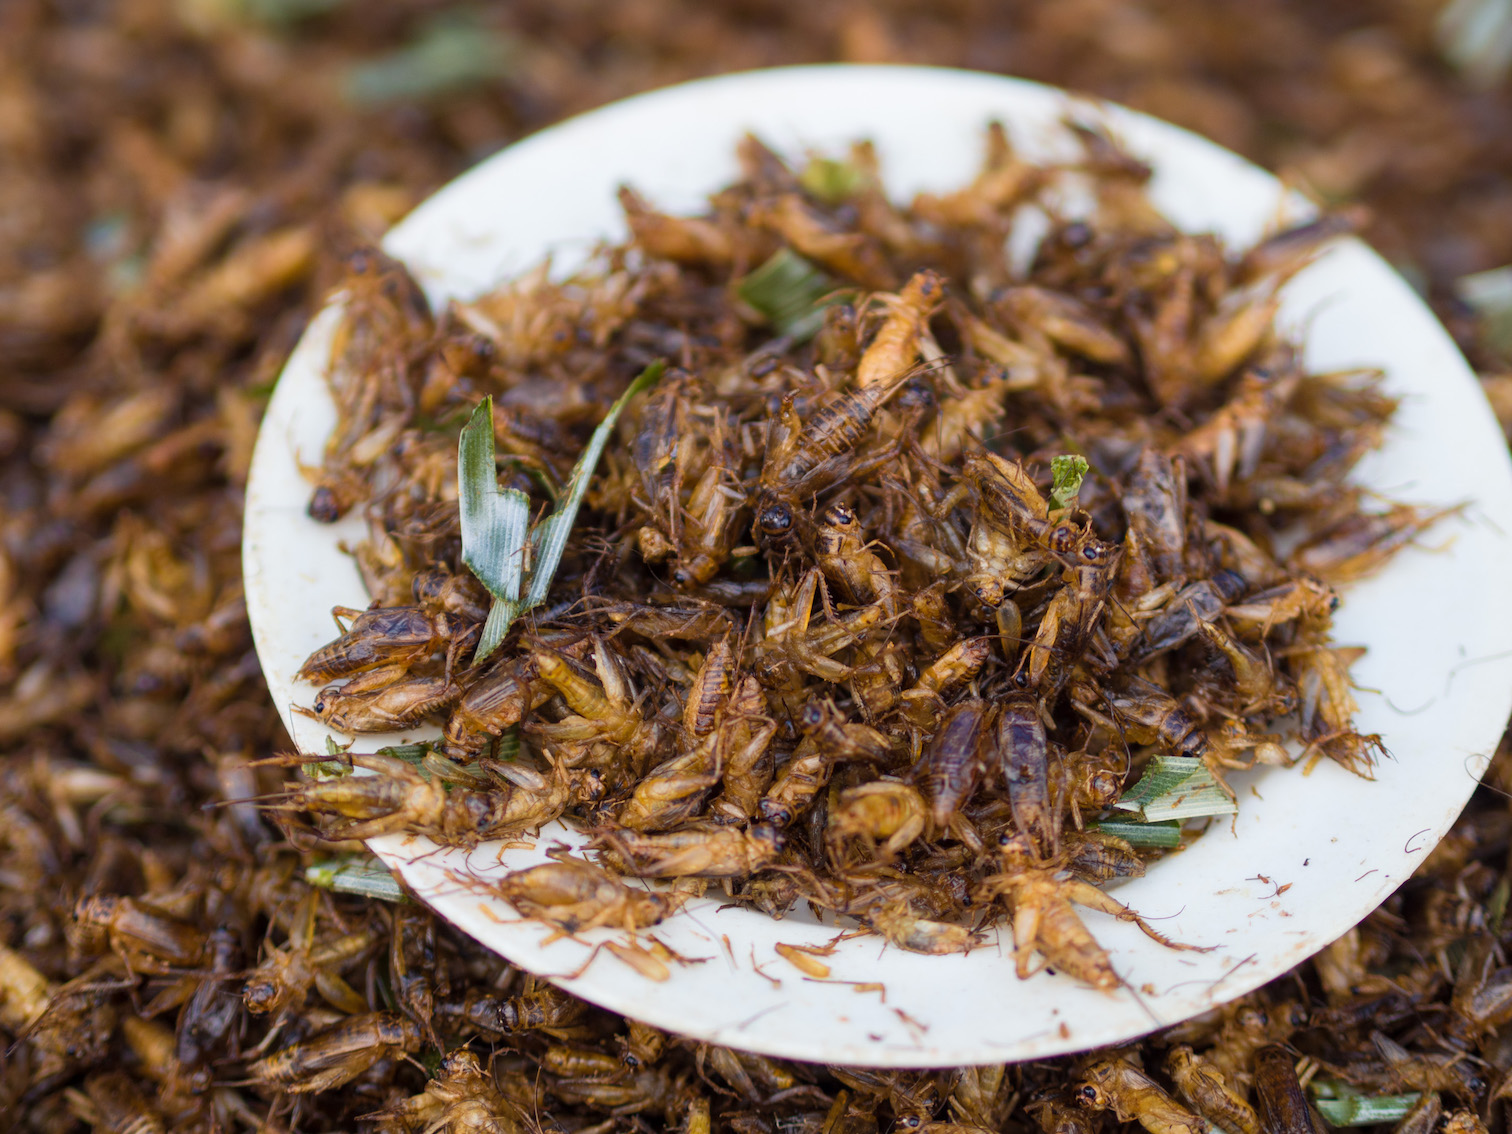 Image: Crickets are now being farmed in Kenya as a food source for humans